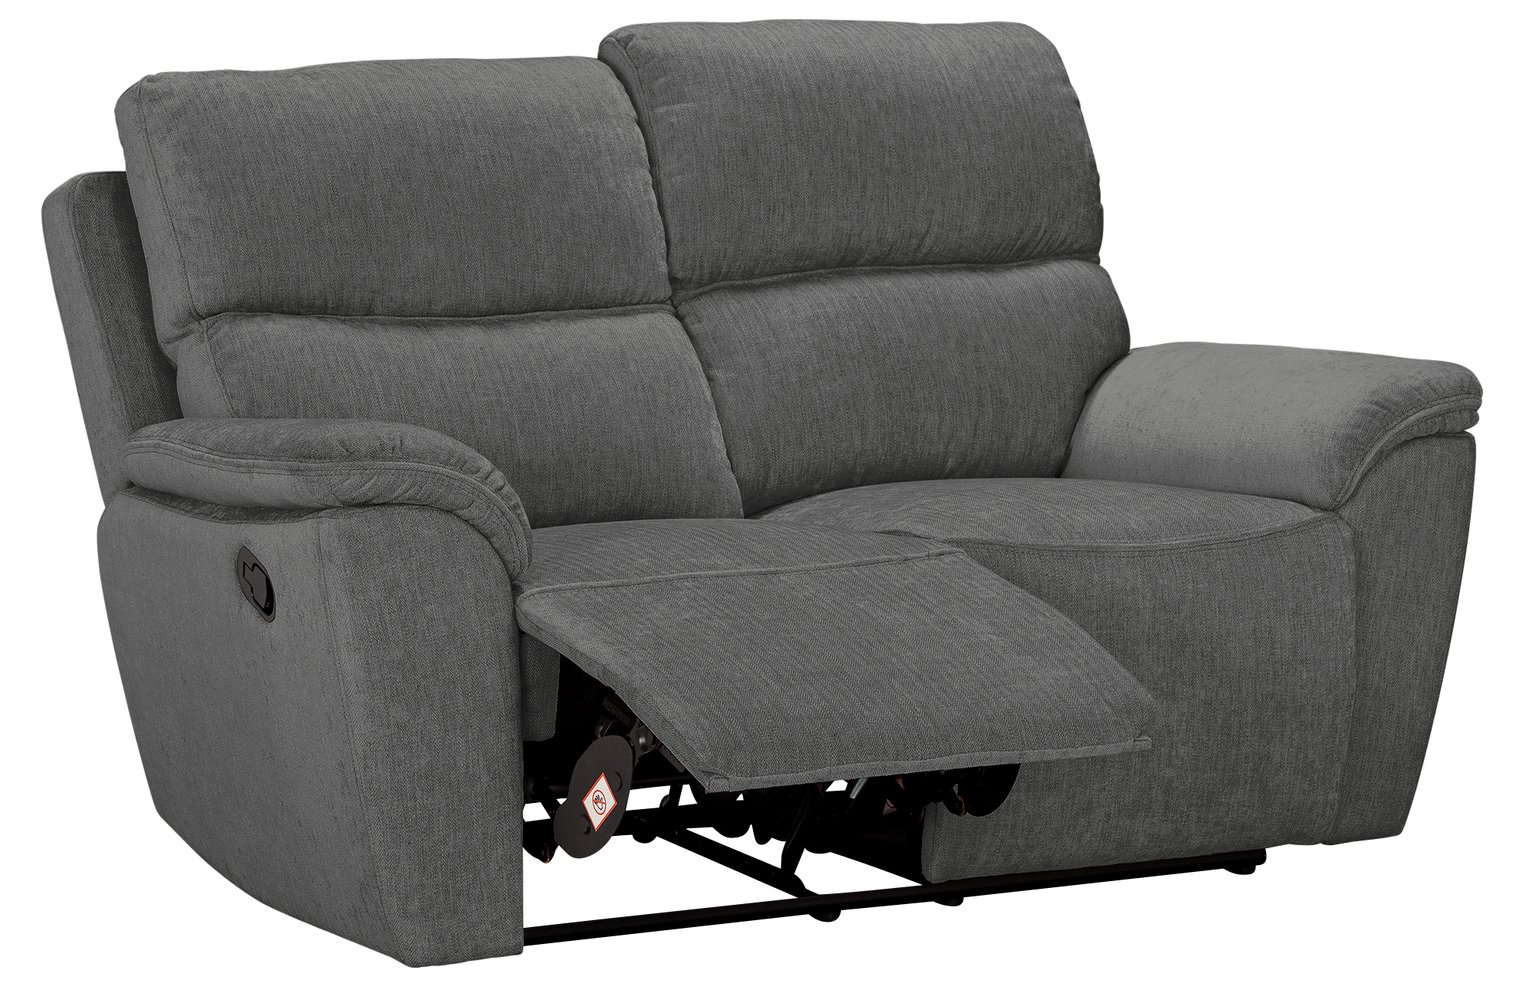 Argos Home Sandy 2 Seater Manual Recliner Sofa - Charcoal from Argos Home